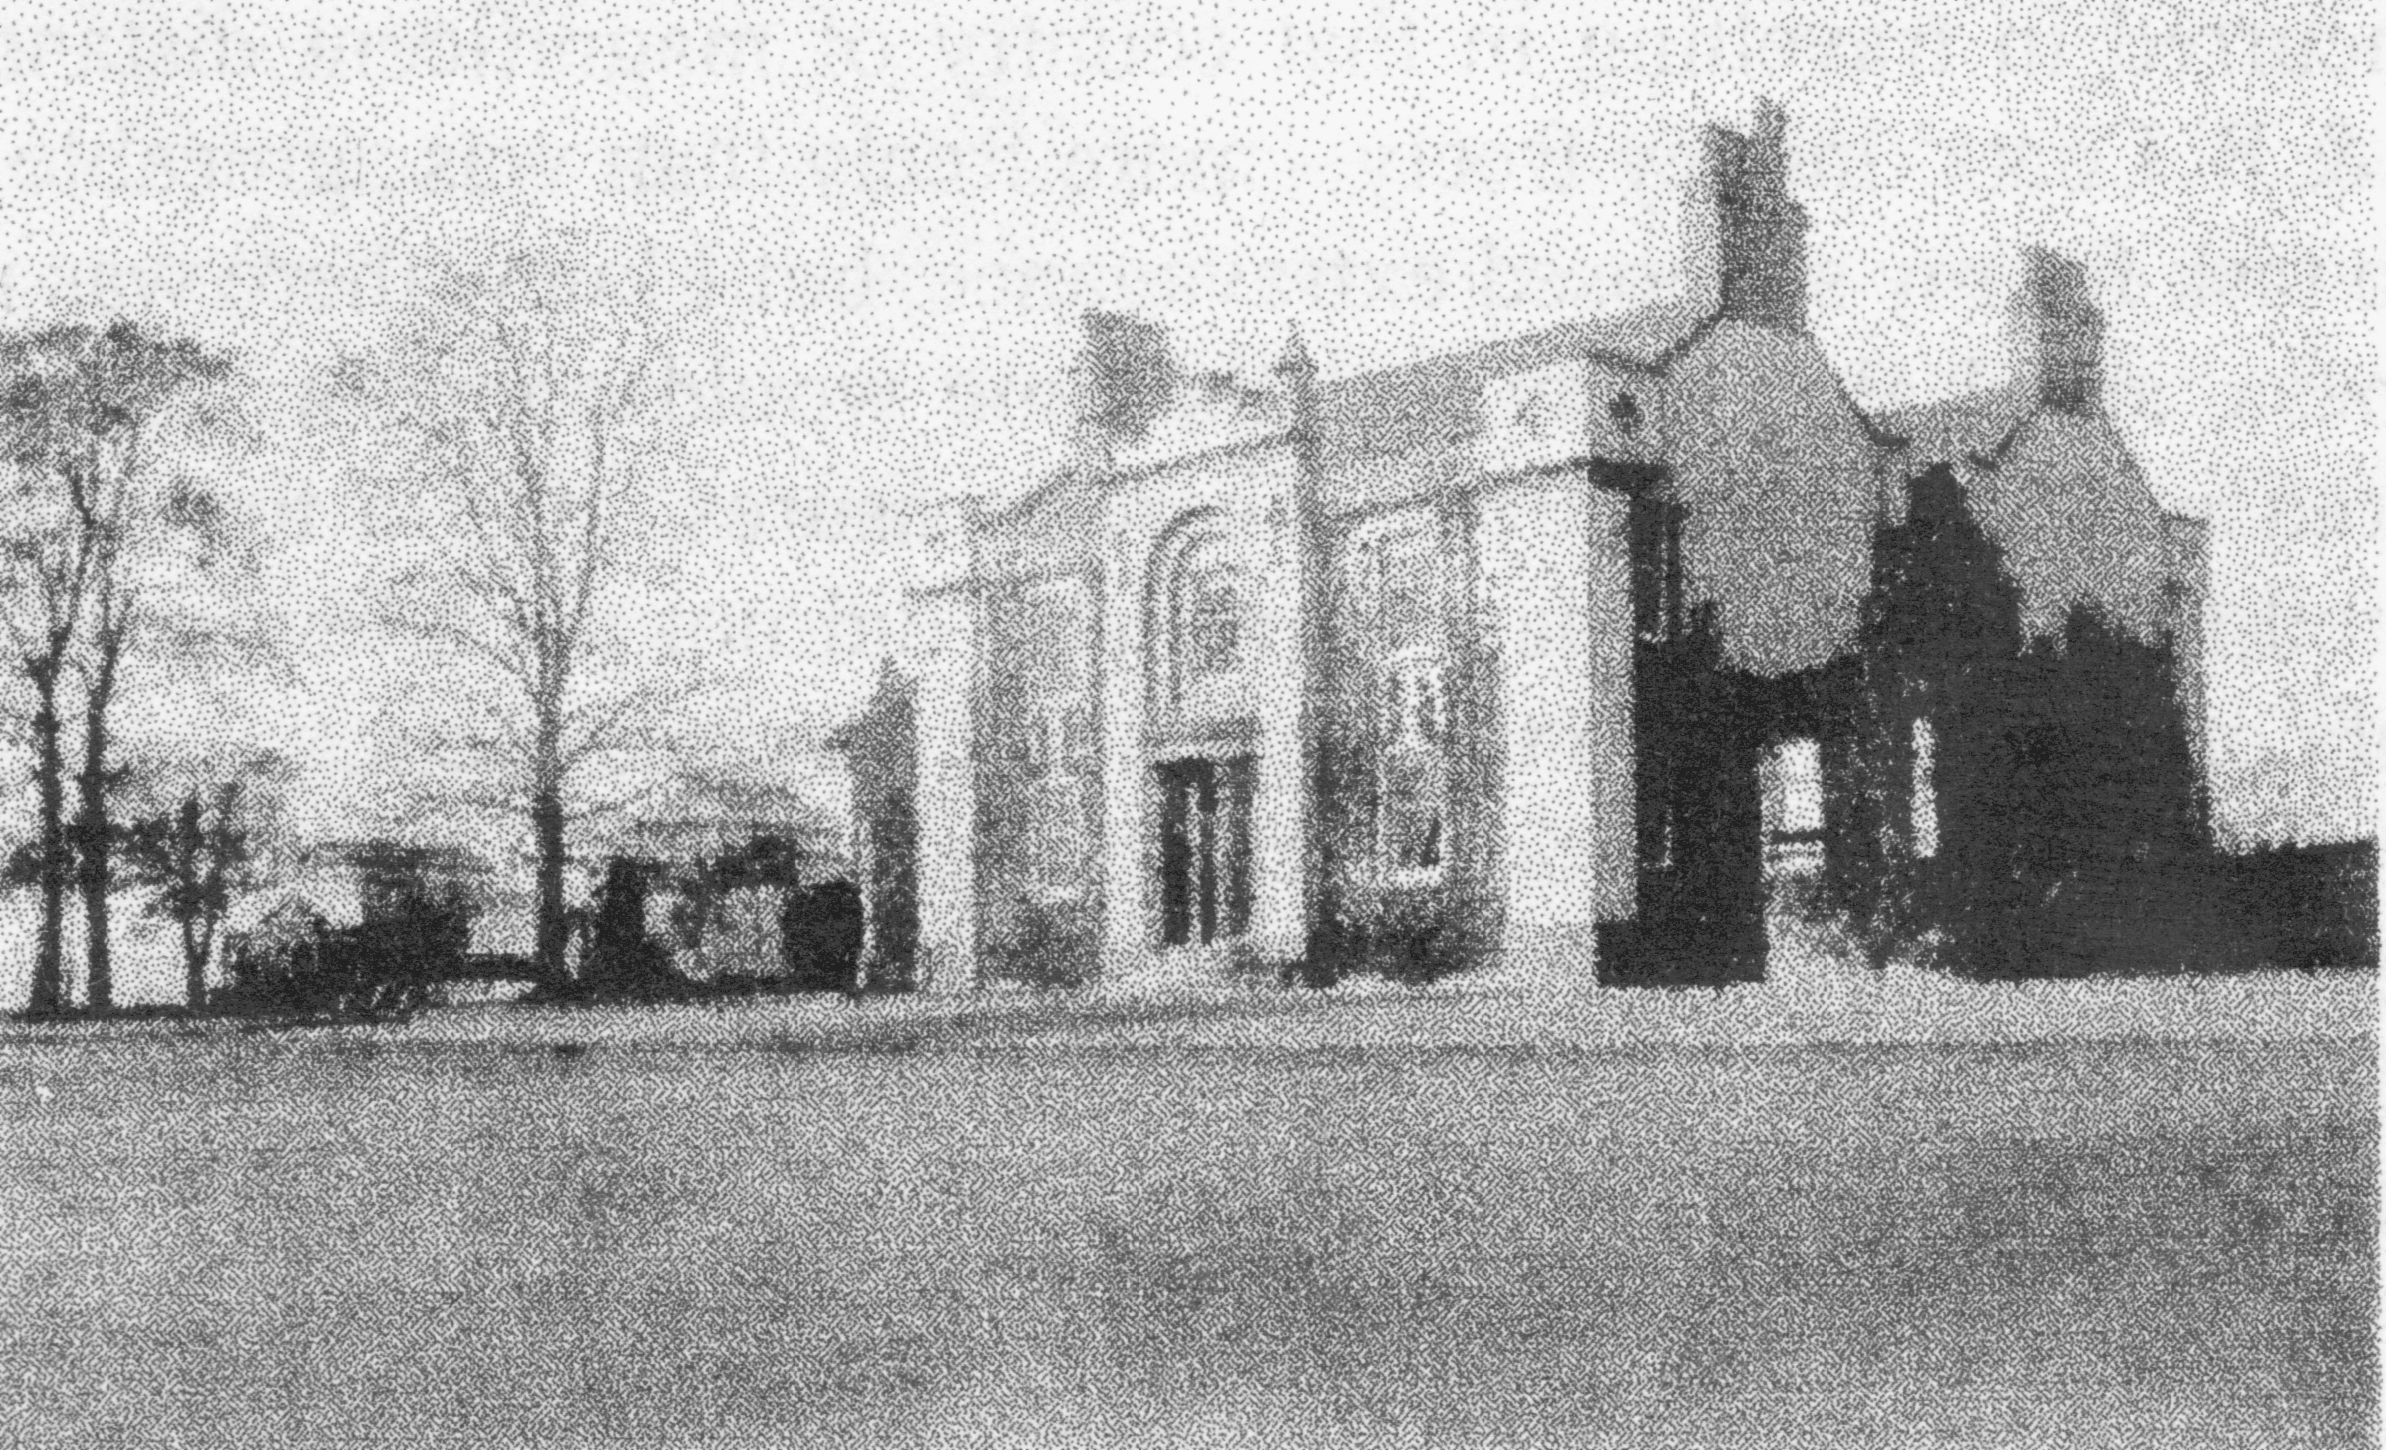 Ferguslie House from the book Cottage to the Castle by andrew Coats